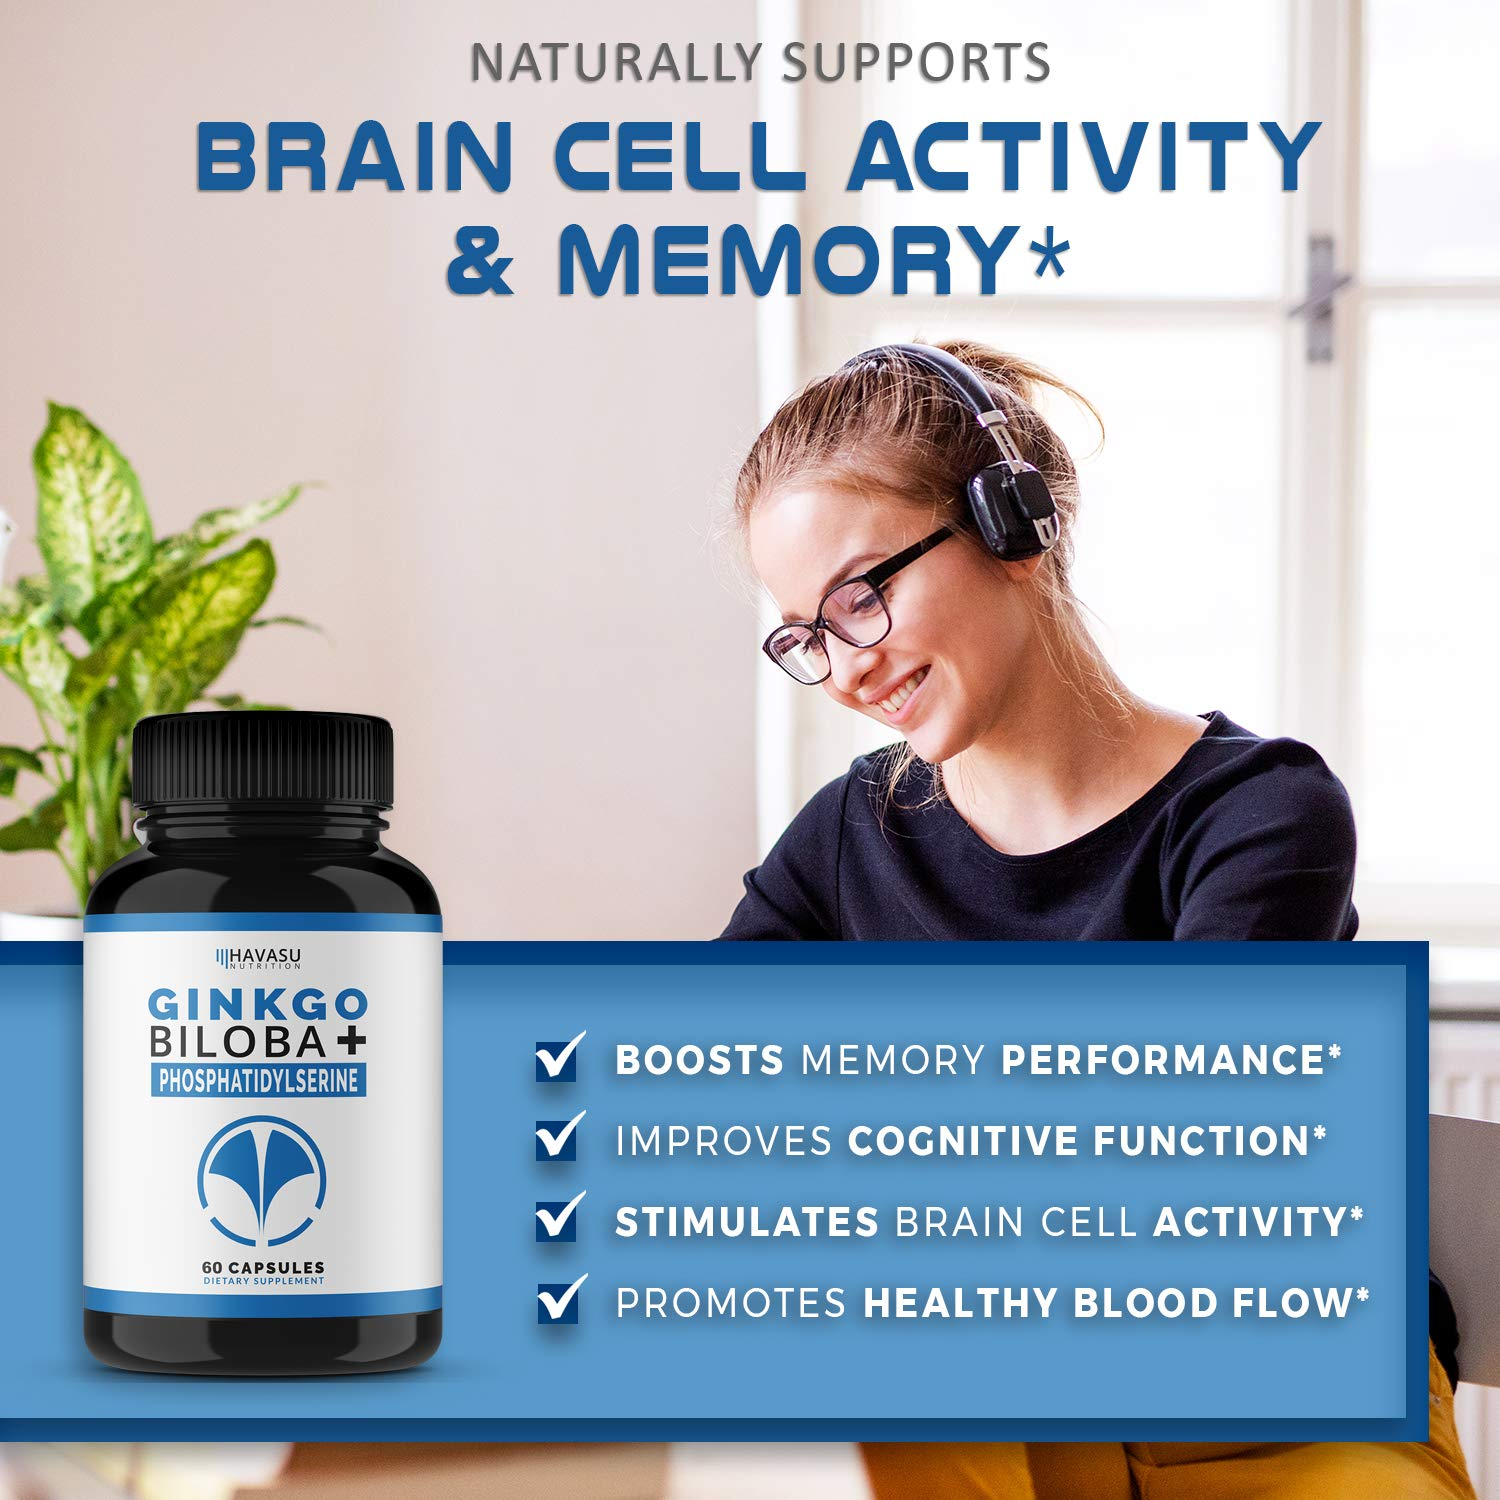 Havasu Nutrition Ginkgo Biloba Non-GMO 120mg, Supports Brain Health, Mental Alertness, Memory & Focus - 60 Capsules